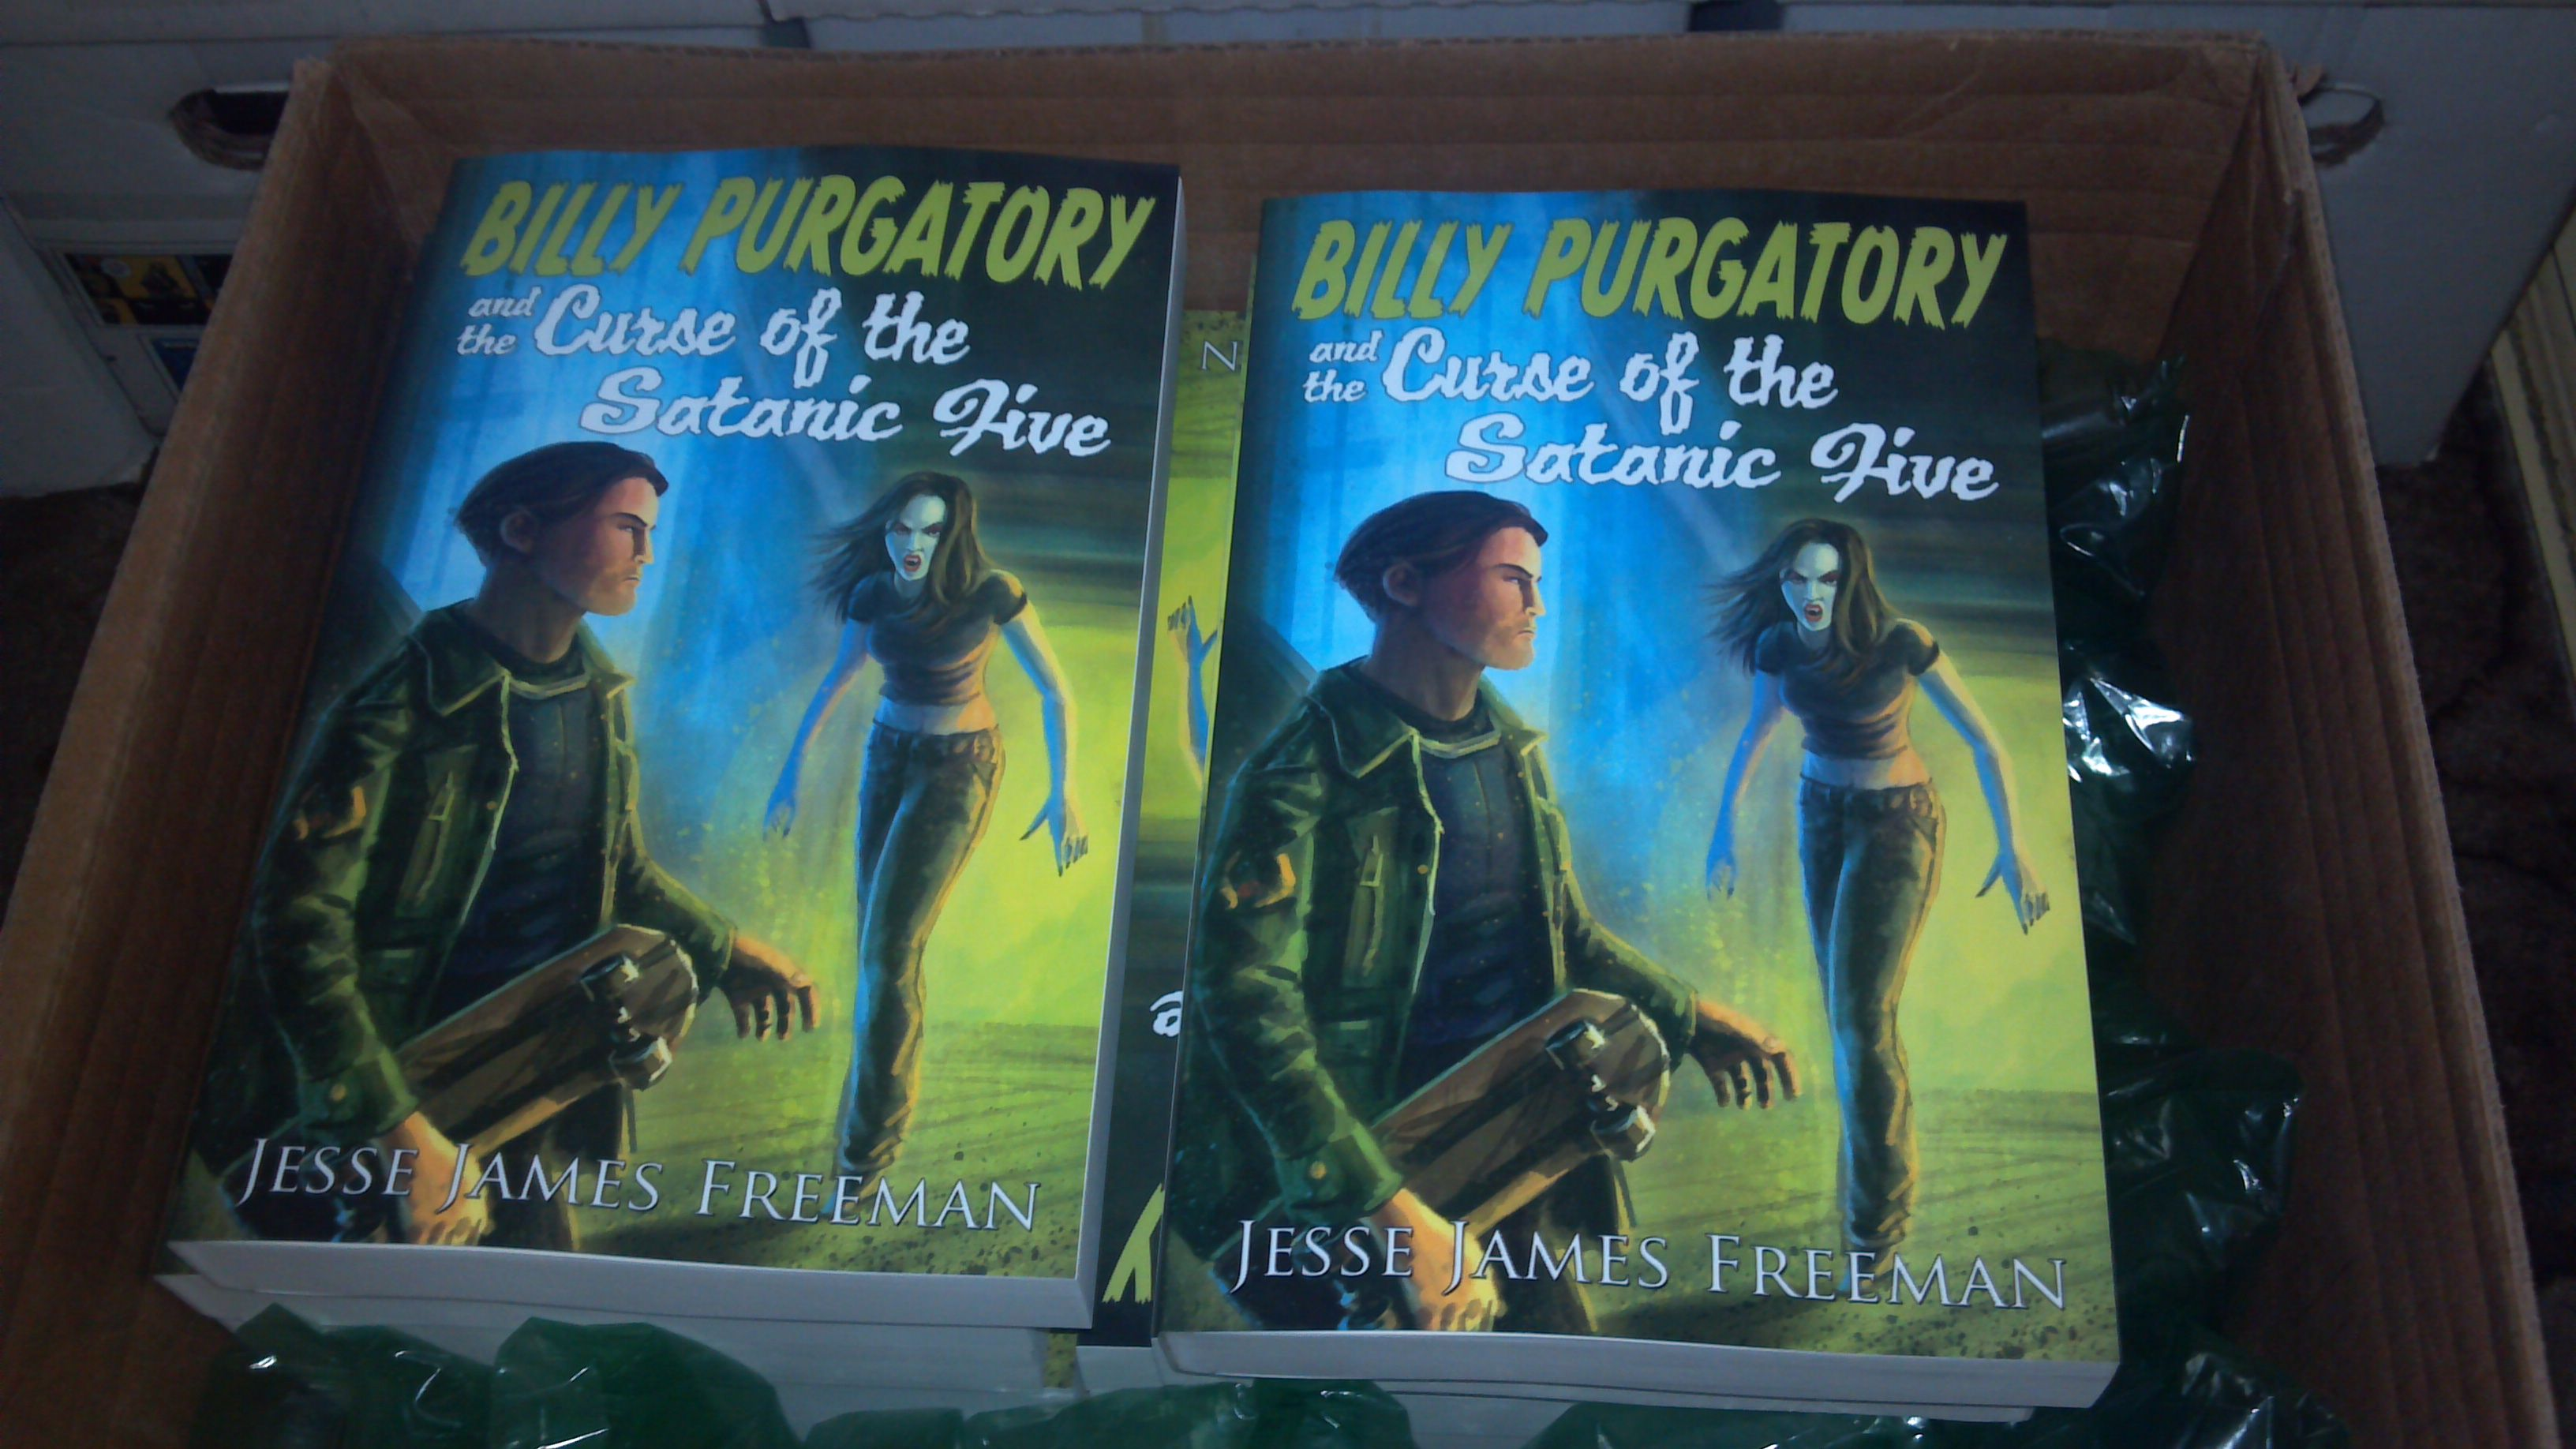 Box of Billy Purgatory and the Curse of the Satanic Five